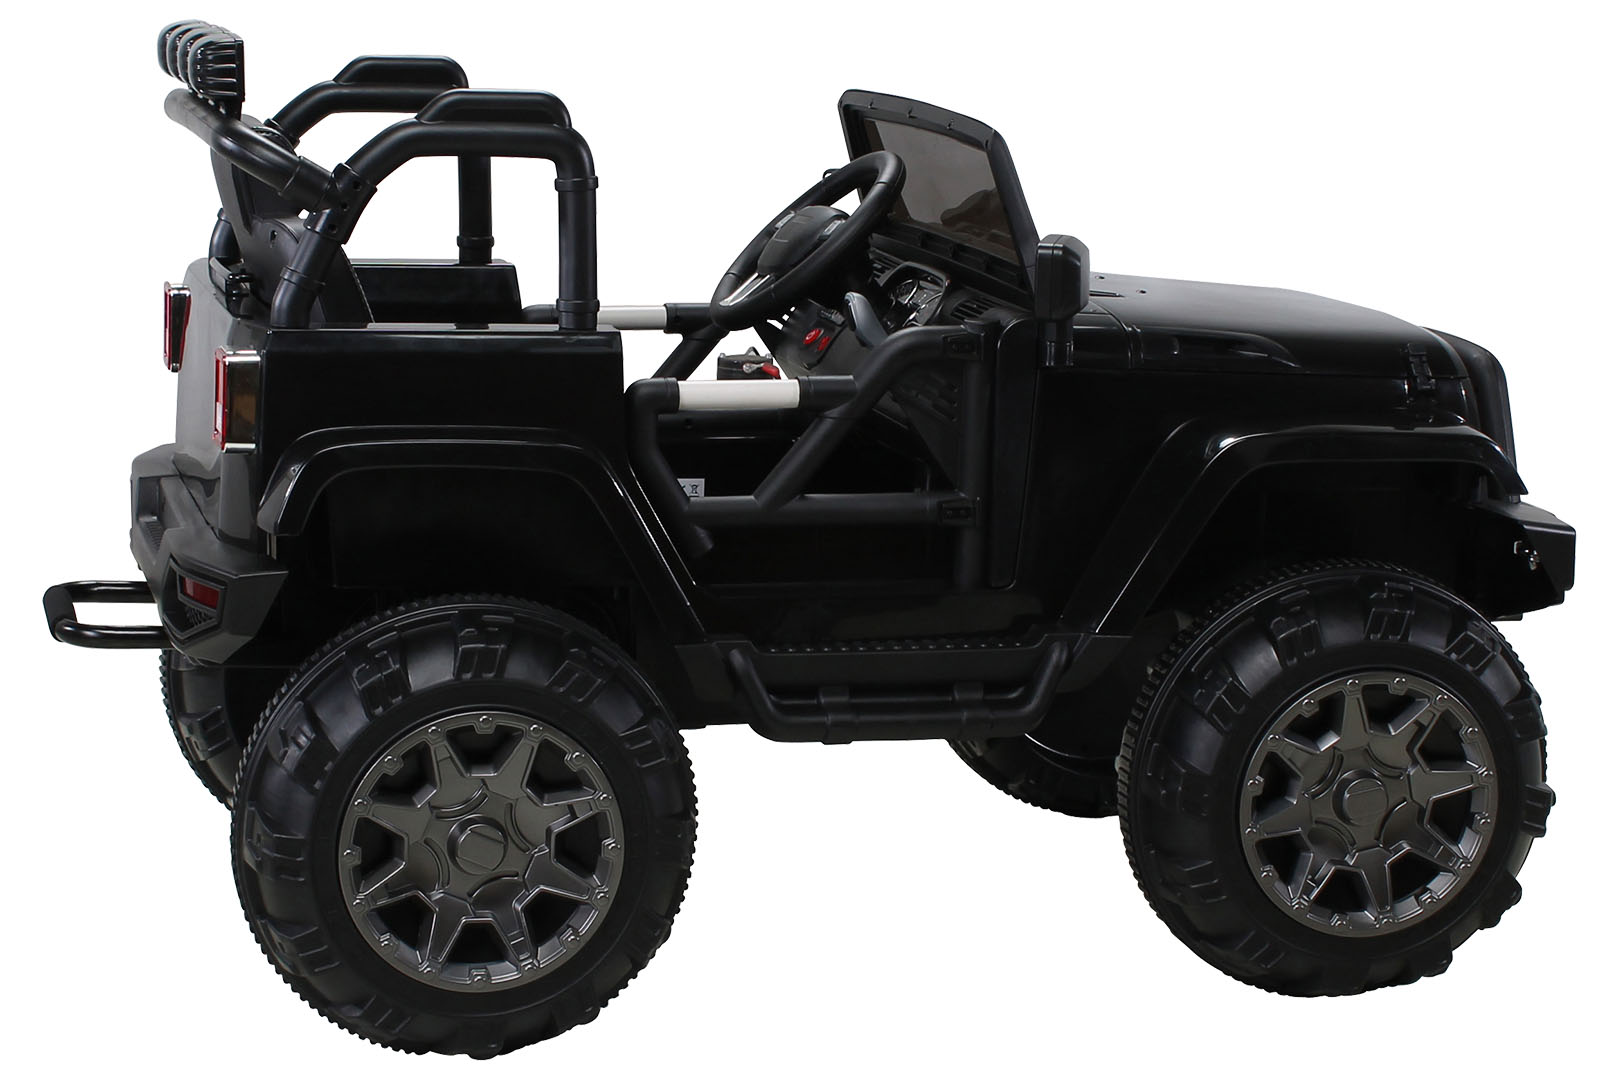 kinder elektroauto offroad jeep adventure 12v 2 x 35 watt. Black Bedroom Furniture Sets. Home Design Ideas